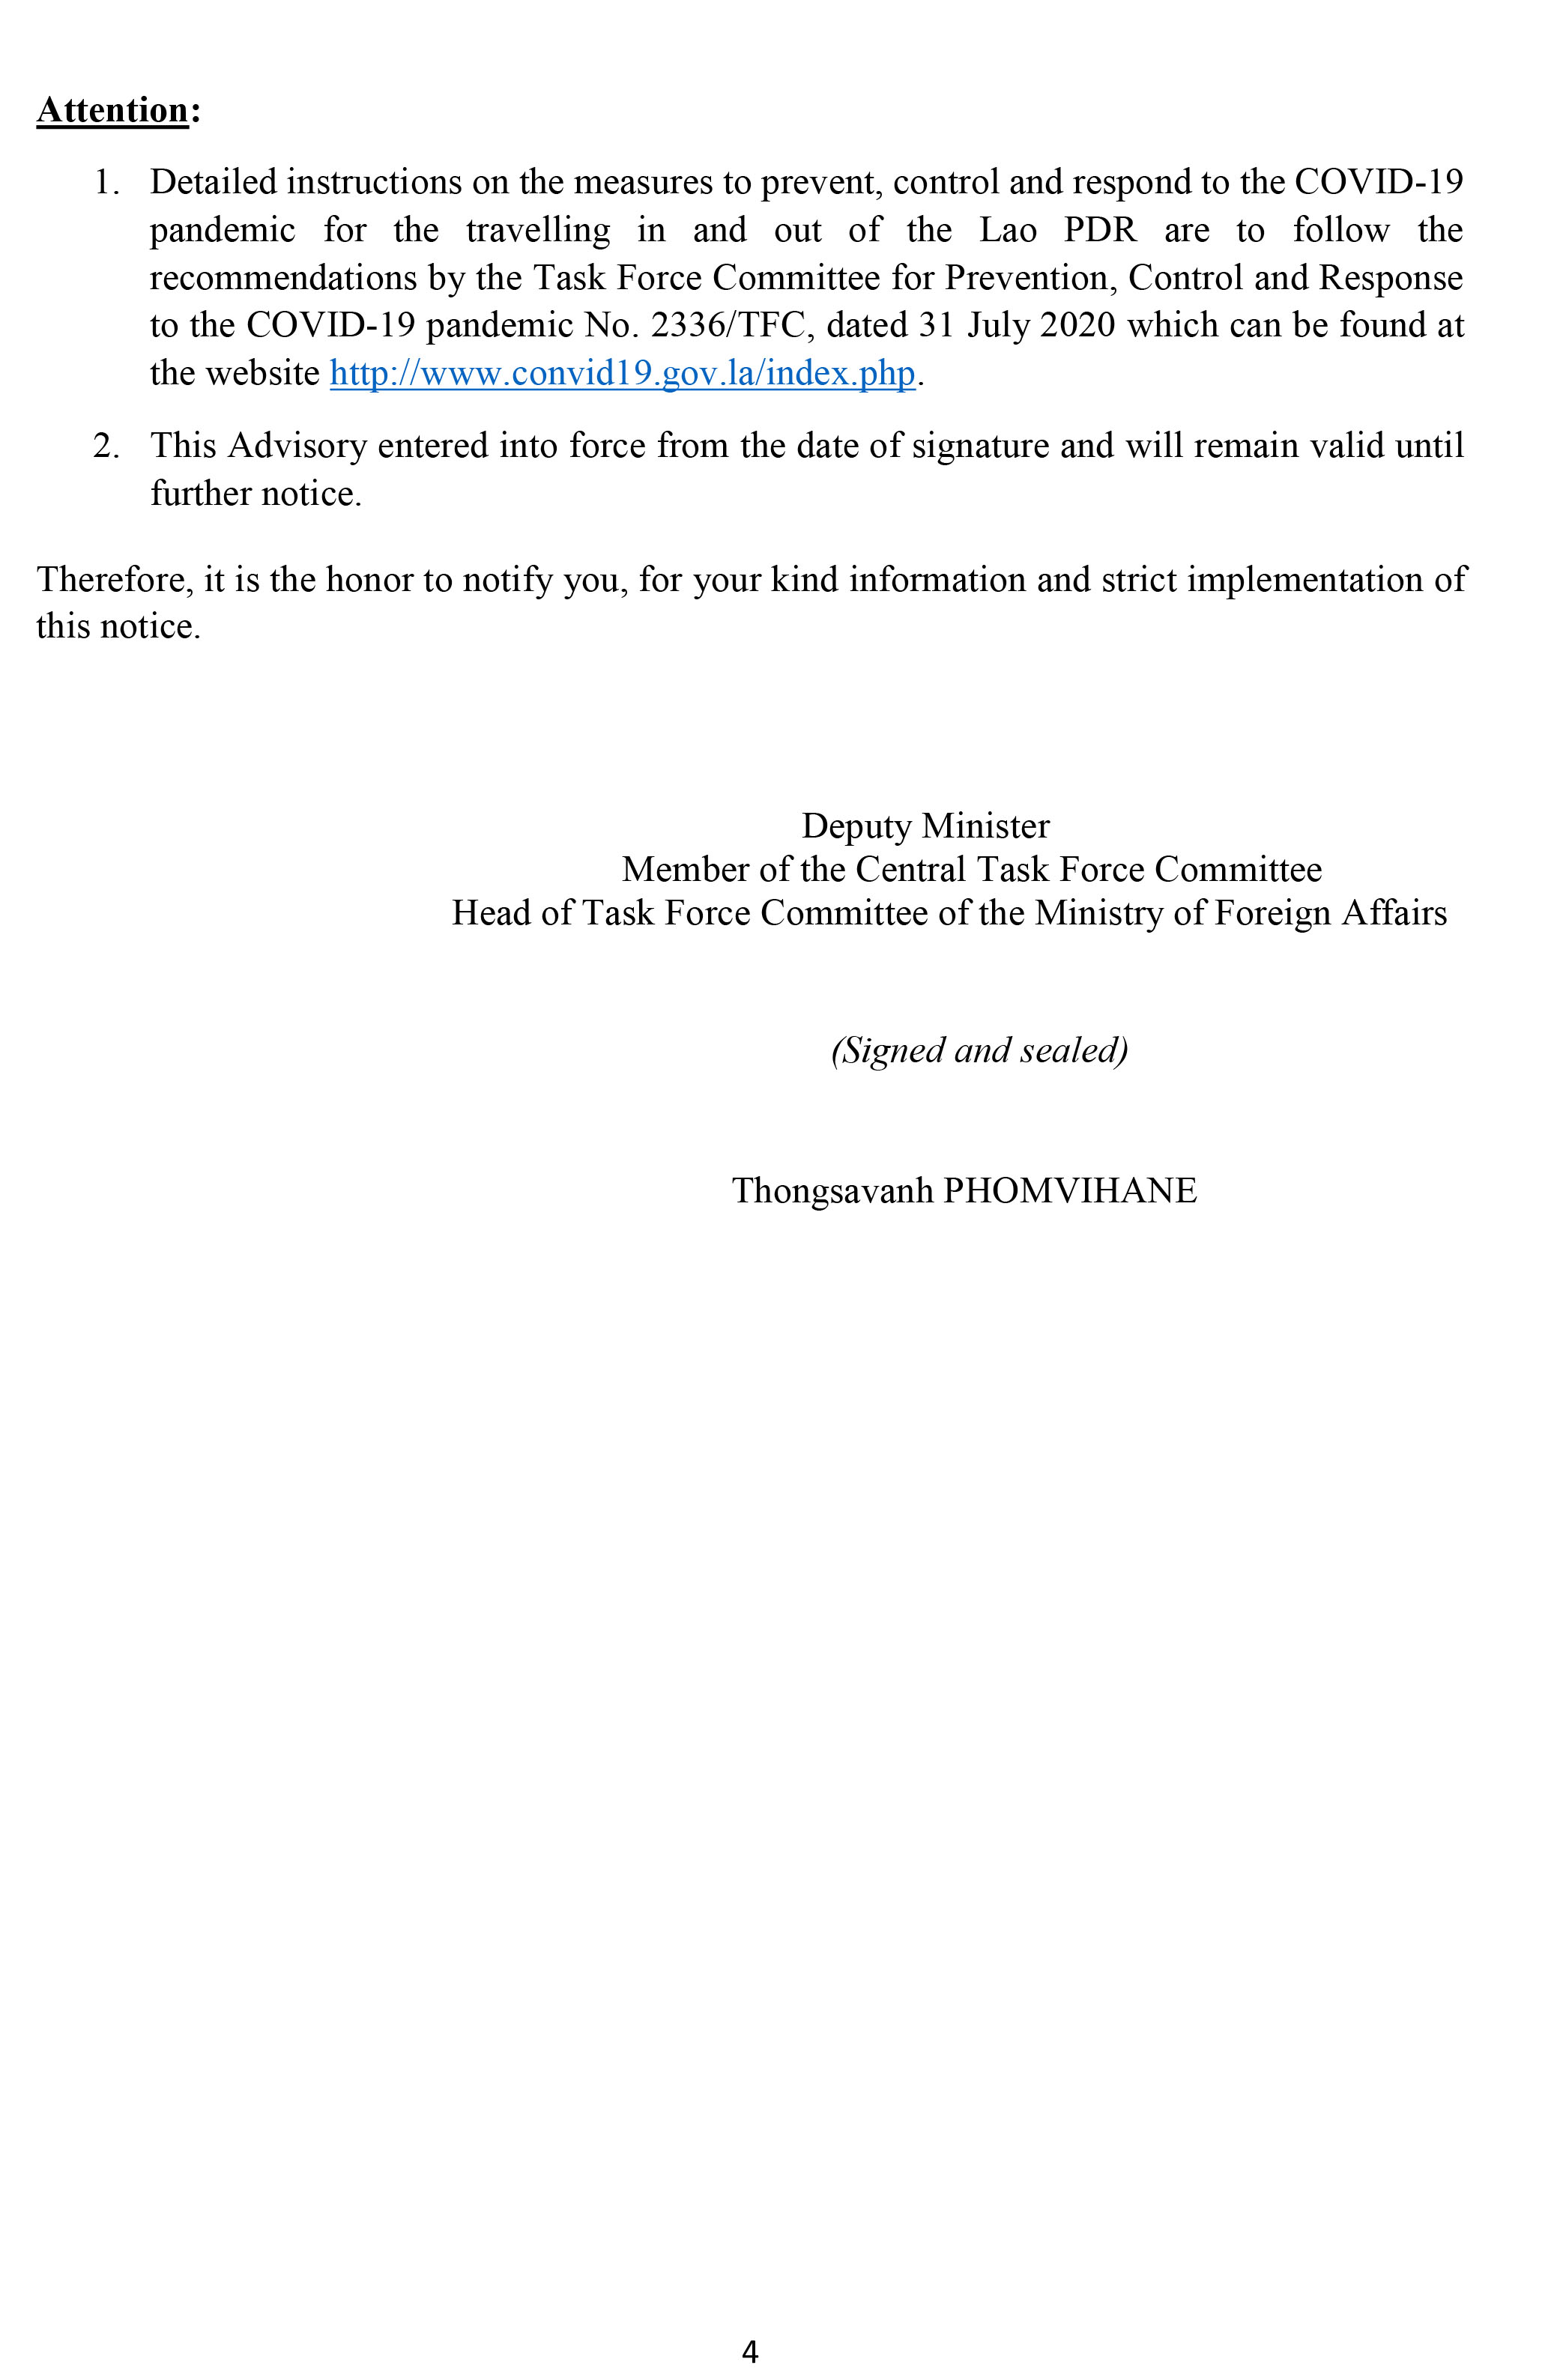 MOFA-Procedural Advisory on documentation and steps 1861-4